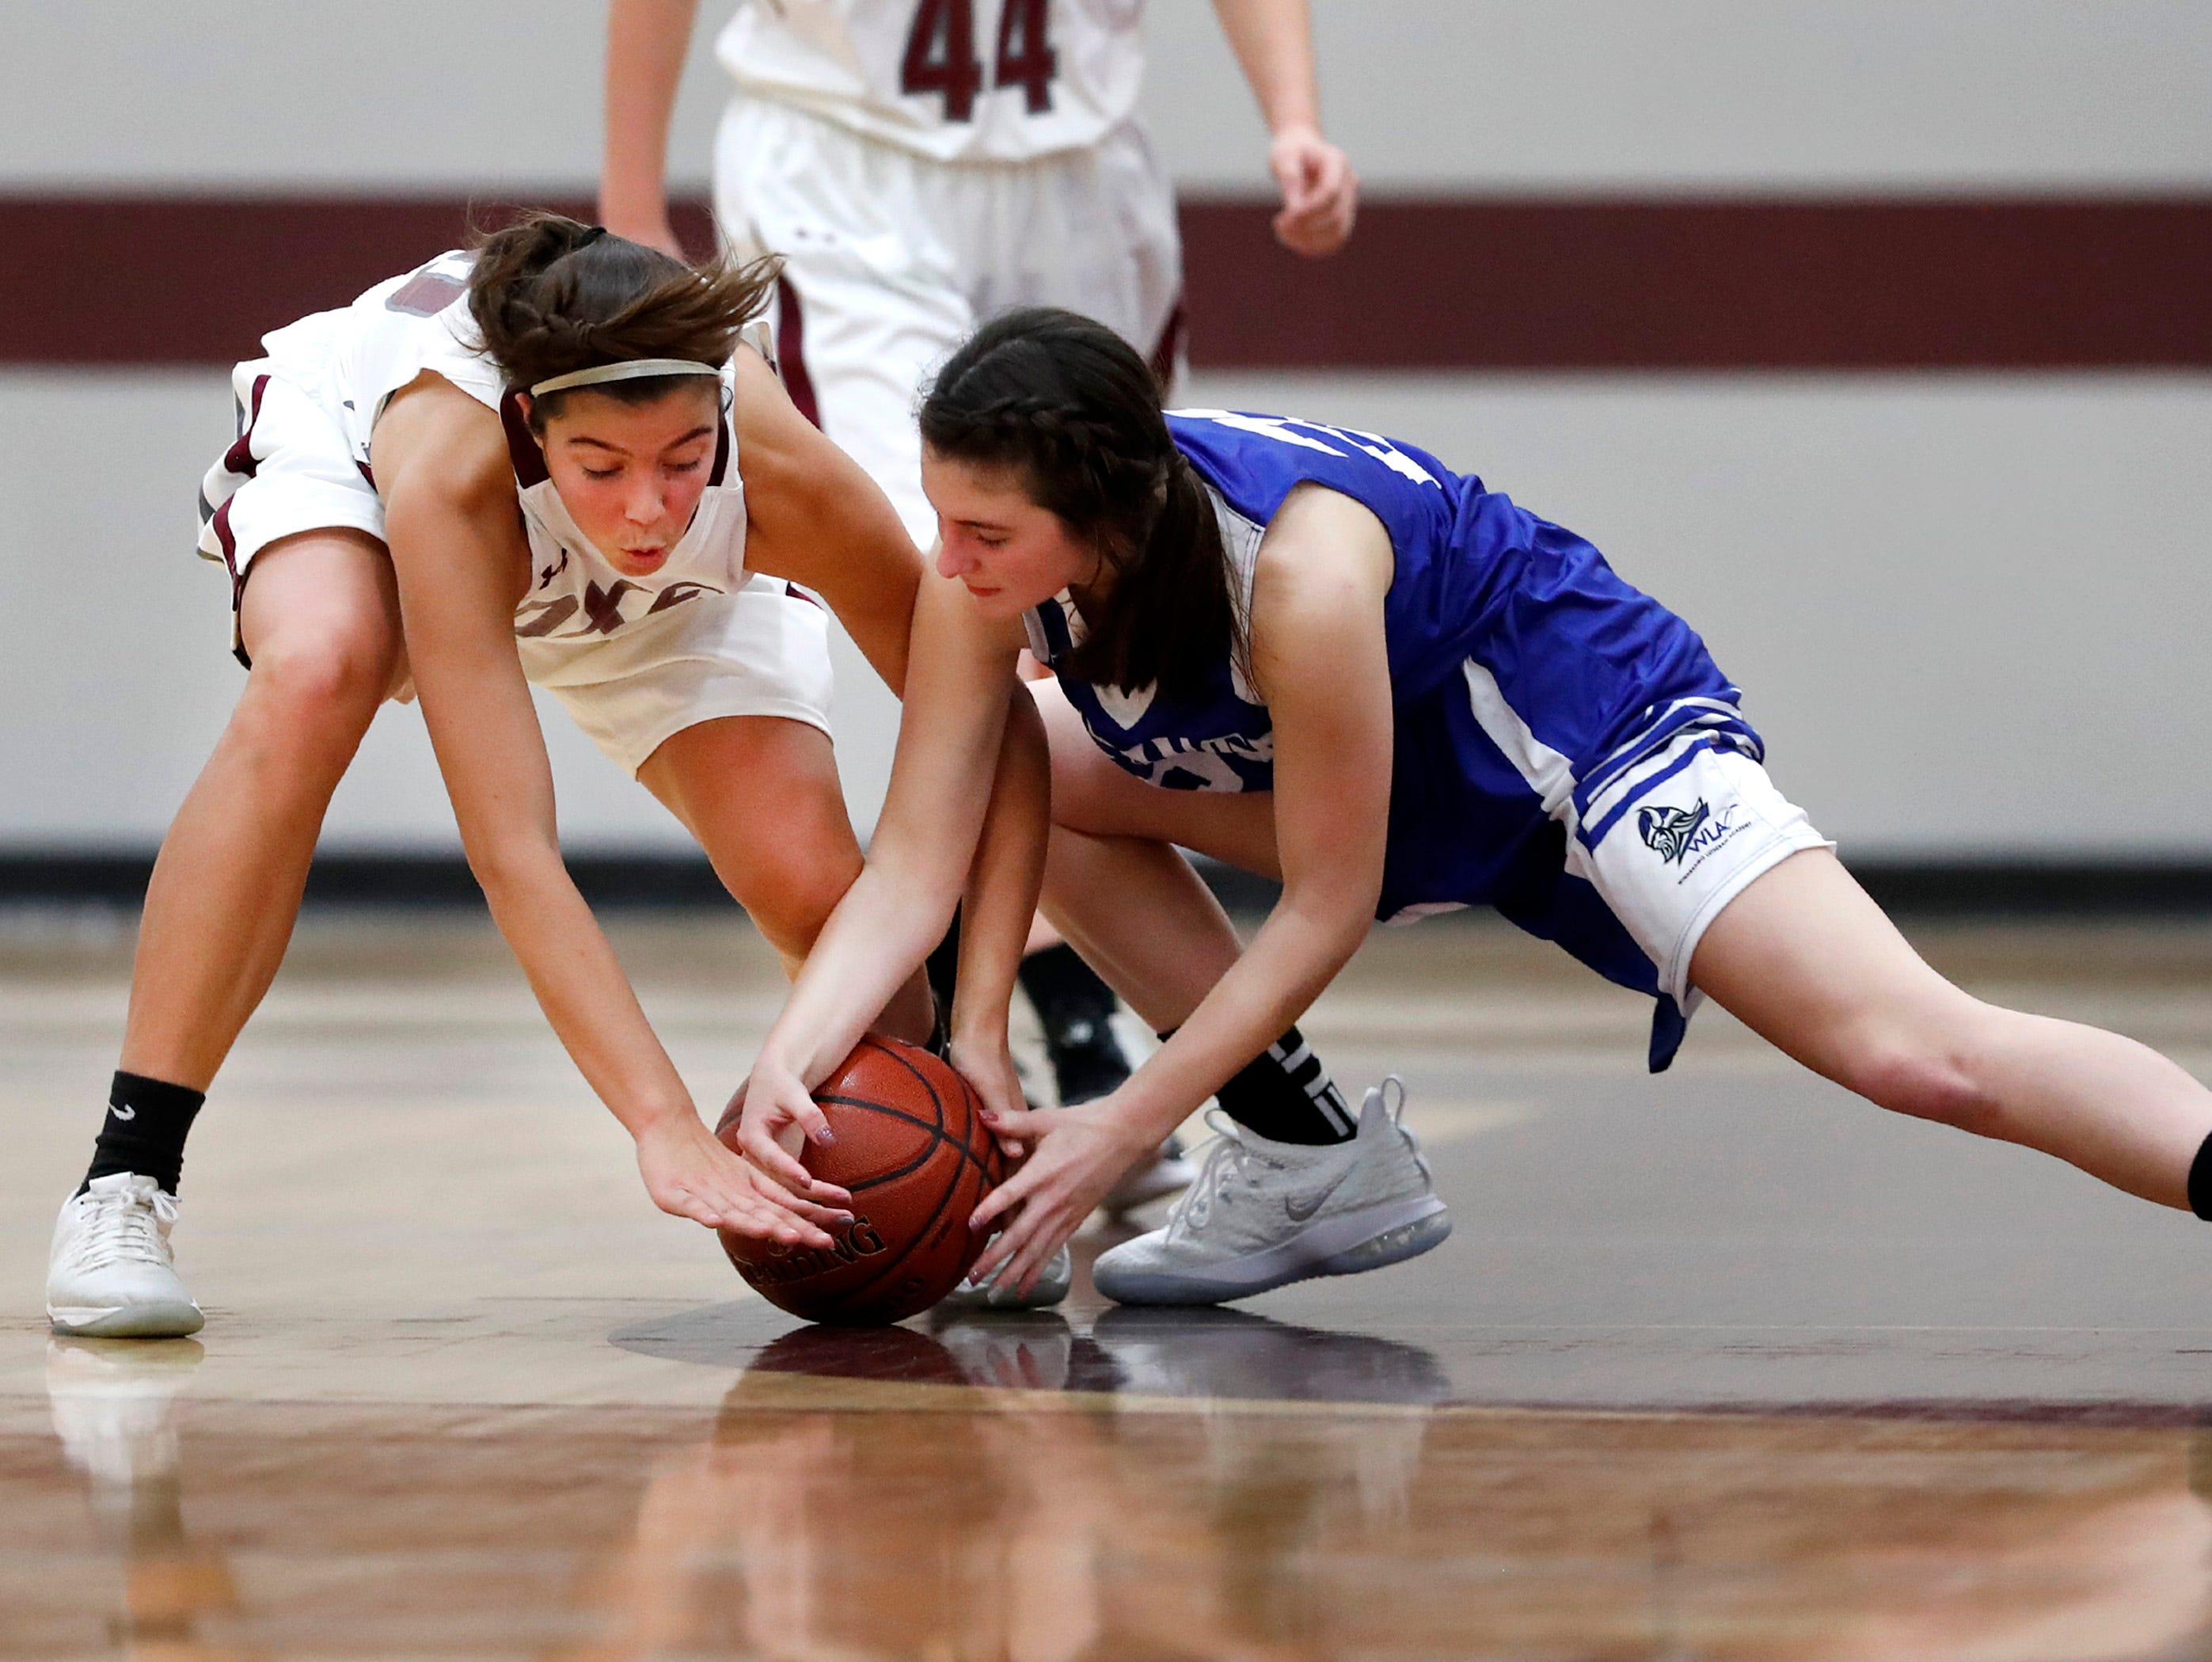 Fox Valley Lutheran High School's Maddie Jacobsen and Winnebago Lutheran Academy's Geneva Hewitt go after a loose ball Tuesday, Nov. 13, 2018, in Appleton, Wis. Fox Valley Lutheran High School lost to Winnebago Lutheran Academy 48-38.